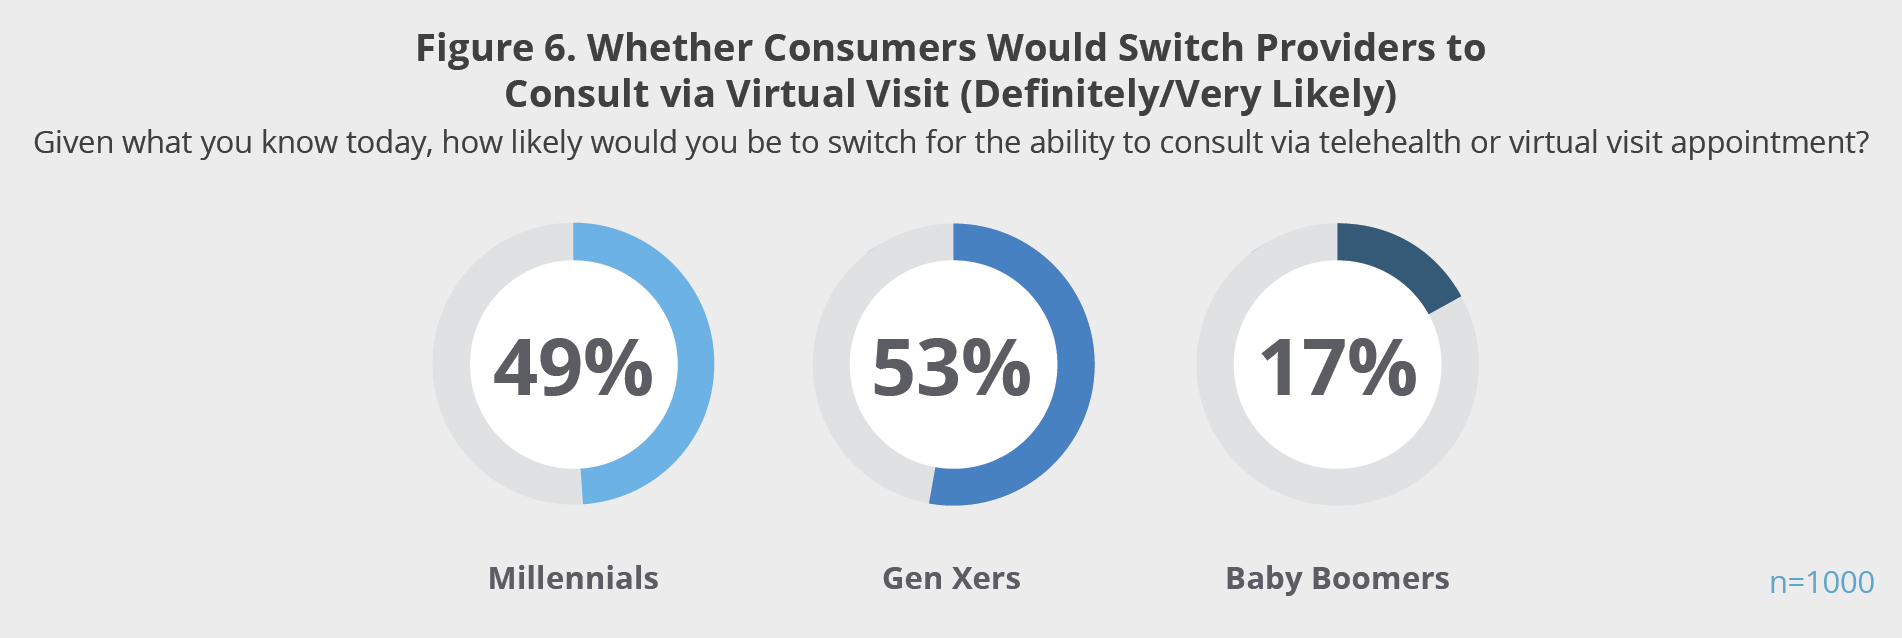 Figure 6. Whether Consumers Would Switch Providers to Consult via Virtual Visit (Definitely/Very Likely)